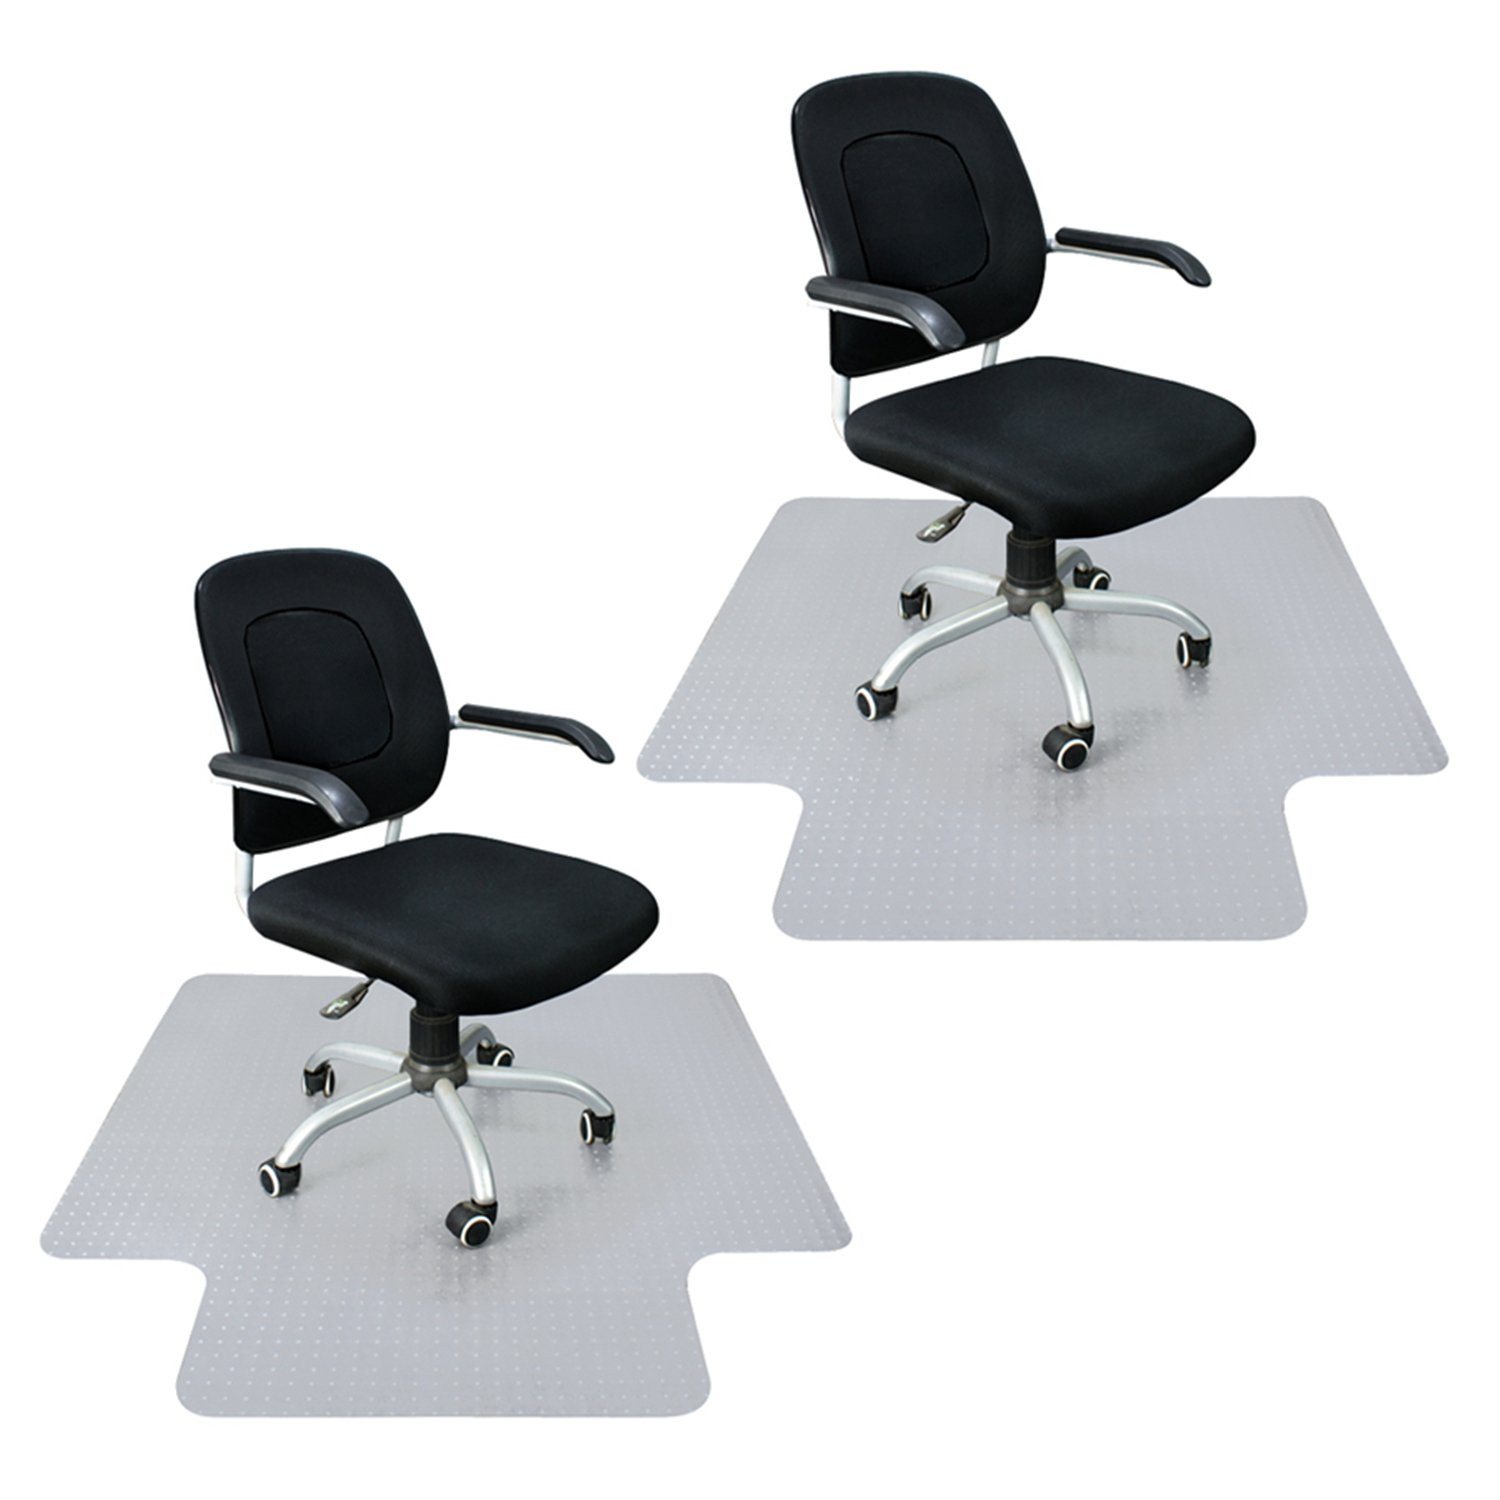 Thickness Plastic Floor Office Chair Mat 60 X 48 Clear Protector Office Chair Rug Carpet Floor Computer Desk 1520mm x 1220mm 3MM F2C 60-Inch by 48-Inch 1//8